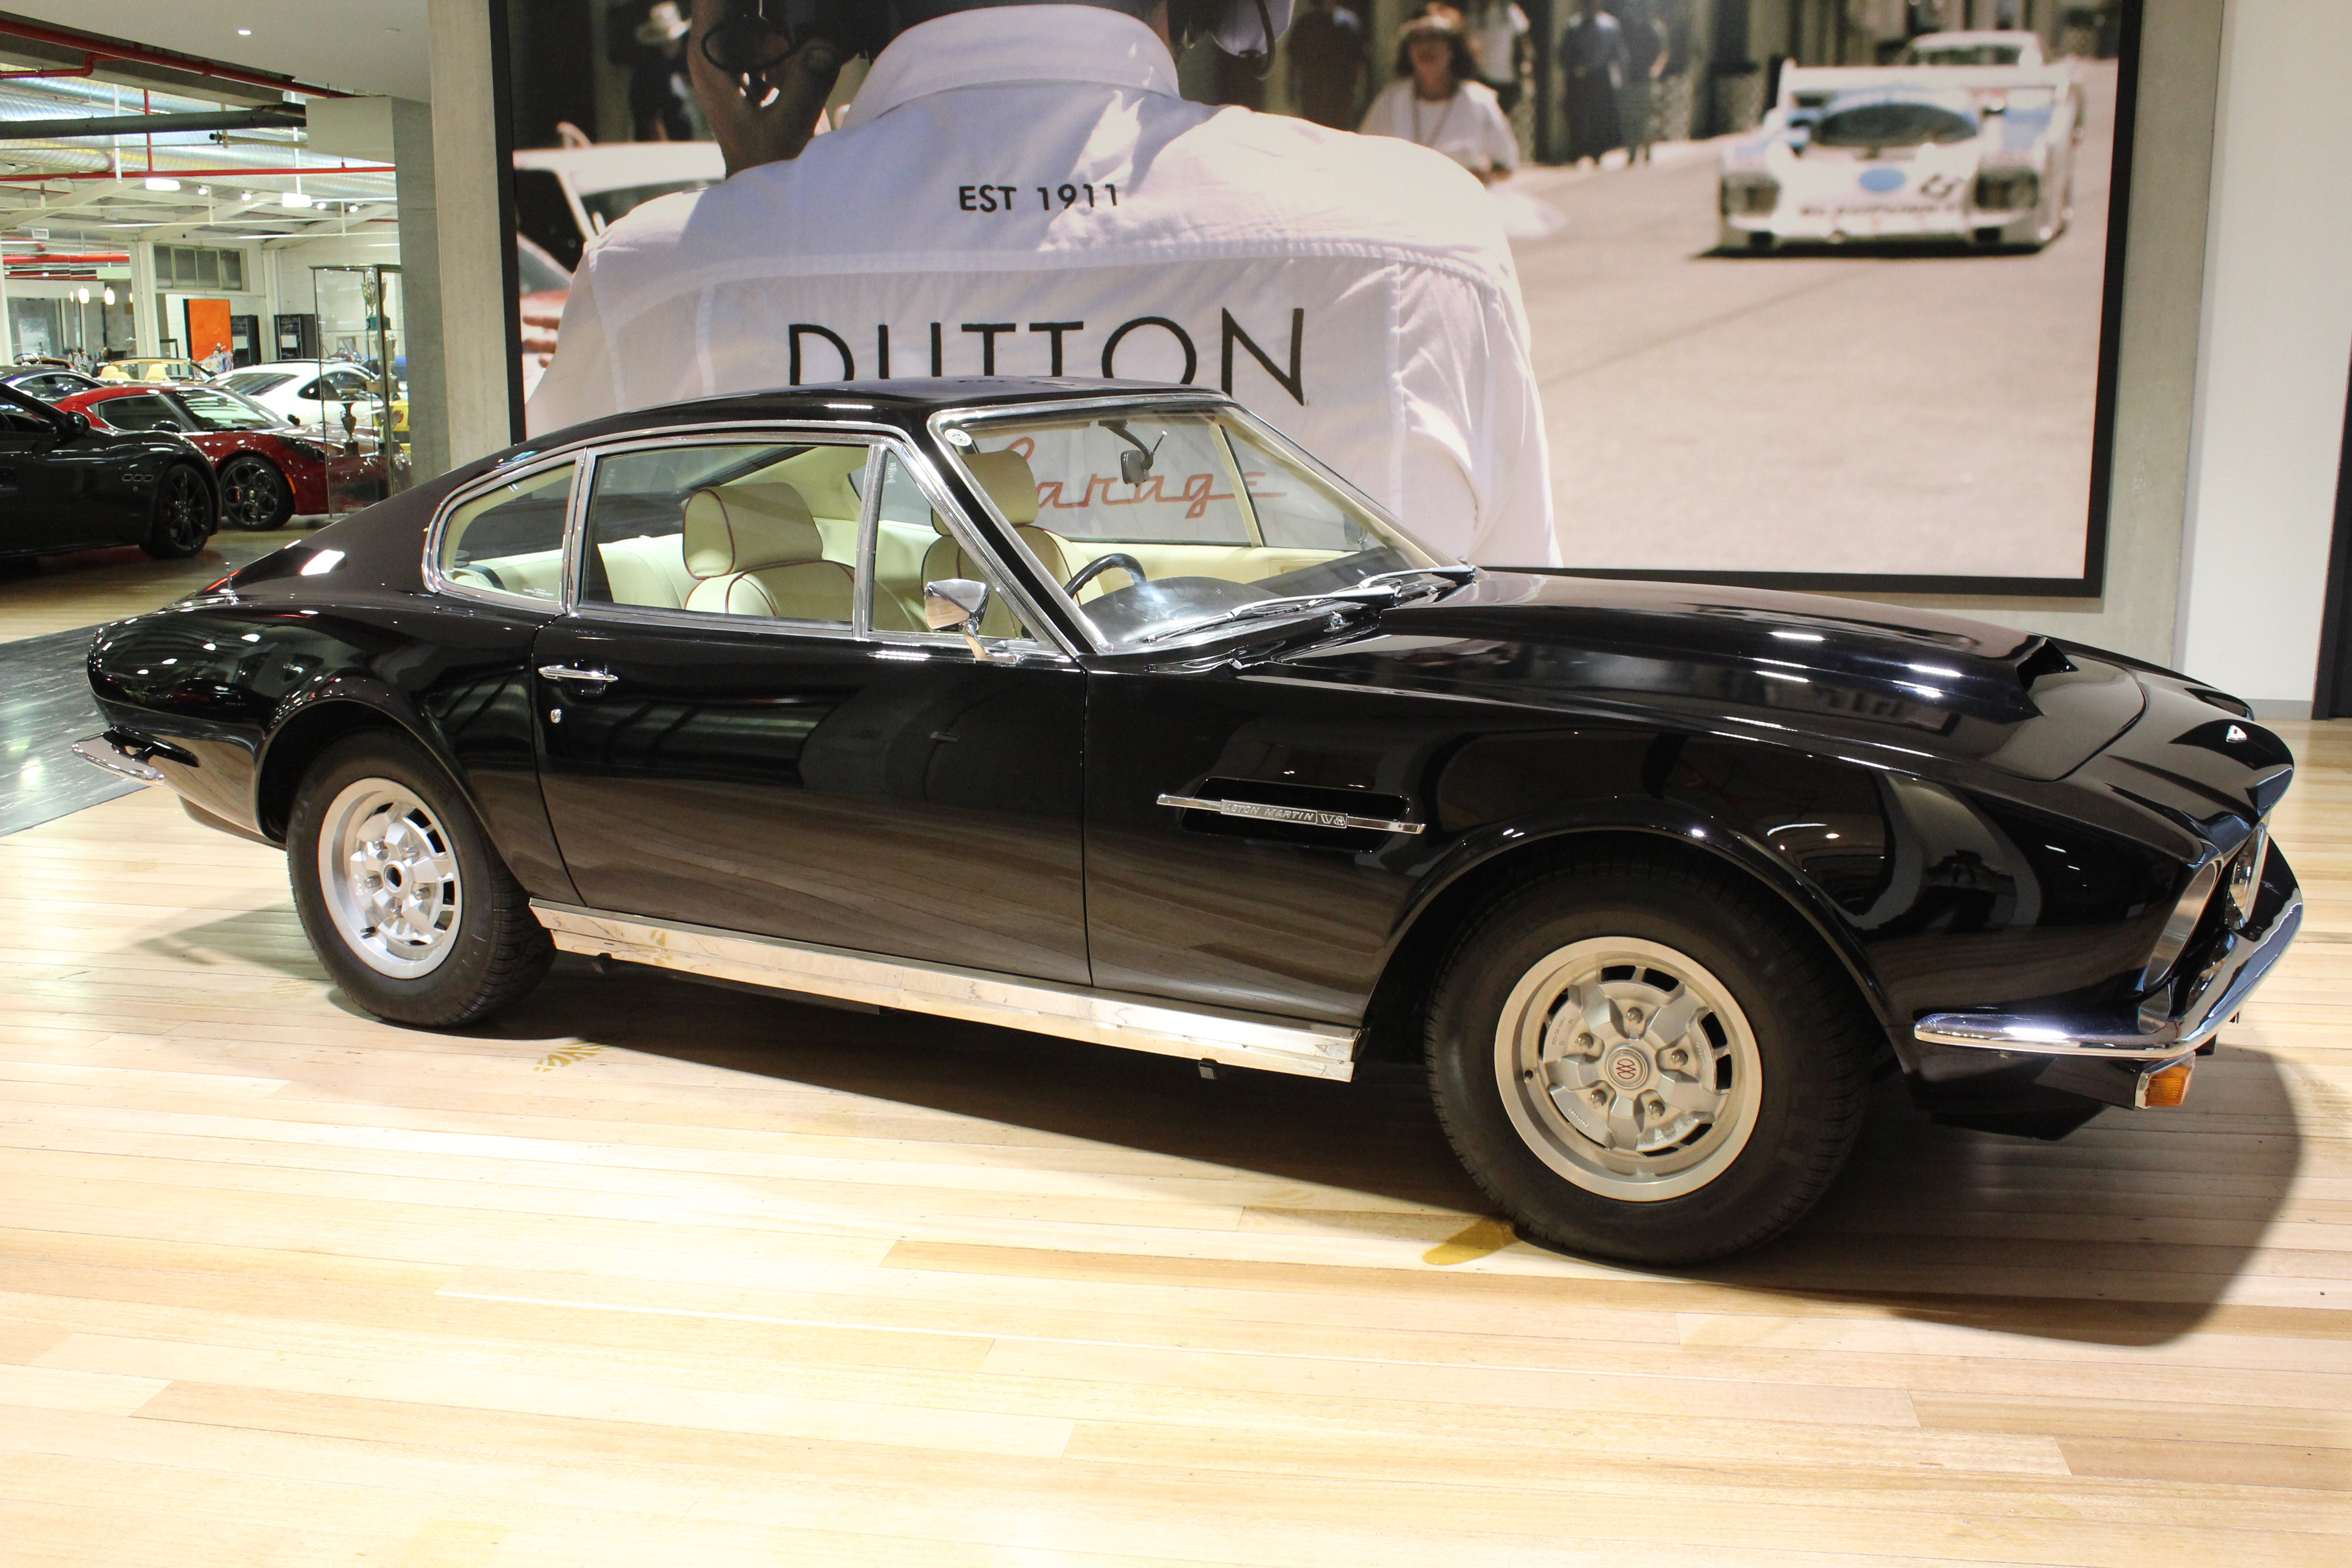 1973 Aston Martin DBS- sold in Australia